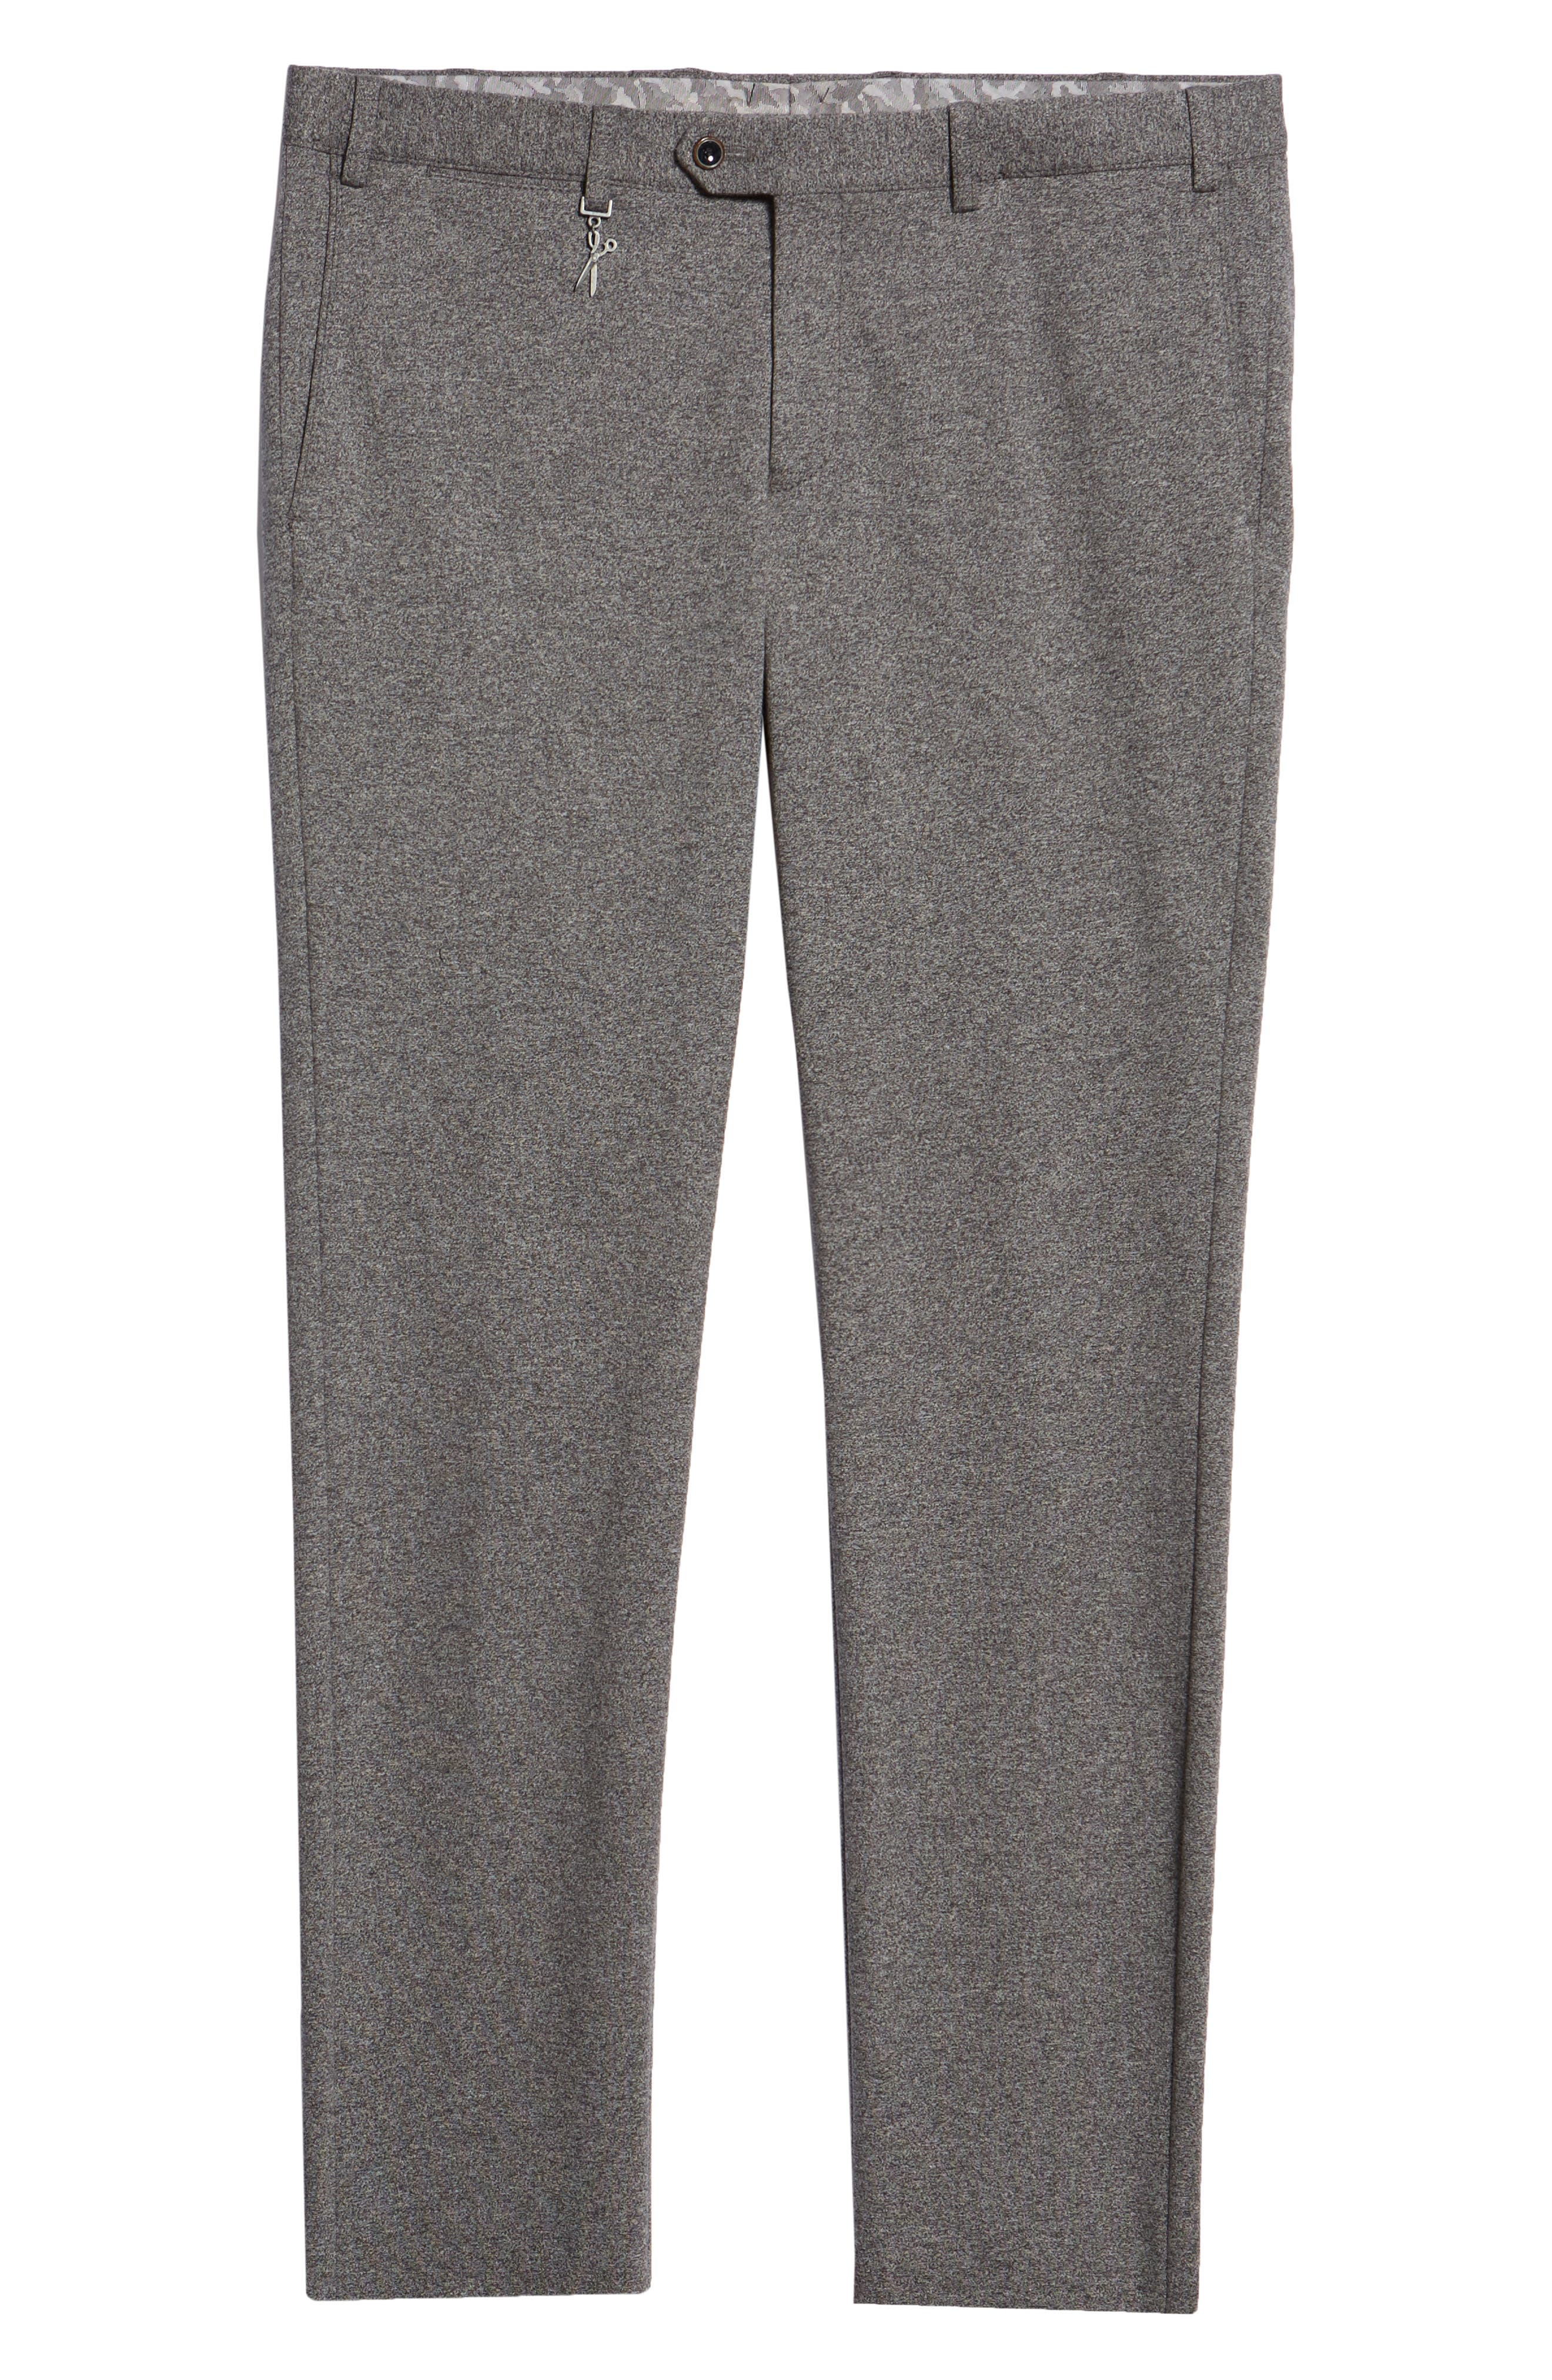 Tero Trim Fit Flat Front Solid Cotton Trousers,                             Alternate thumbnail 6, color,                             GREY